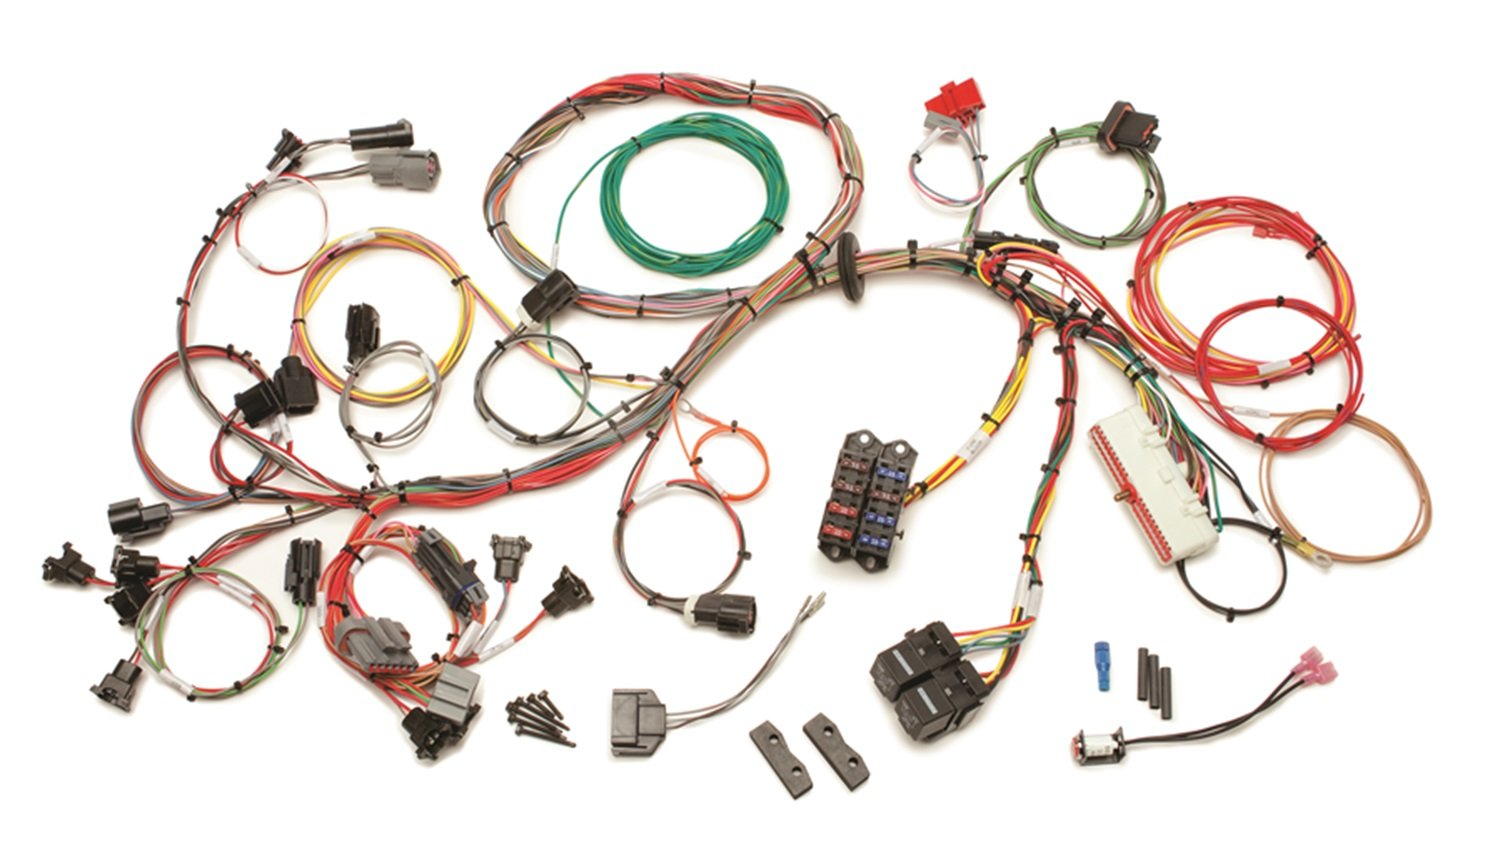 71UX1IBfleL._SL1500_ amazon com painless 60510 5 0l wiring harness automotive ford wiring harness at alyssarenee.co